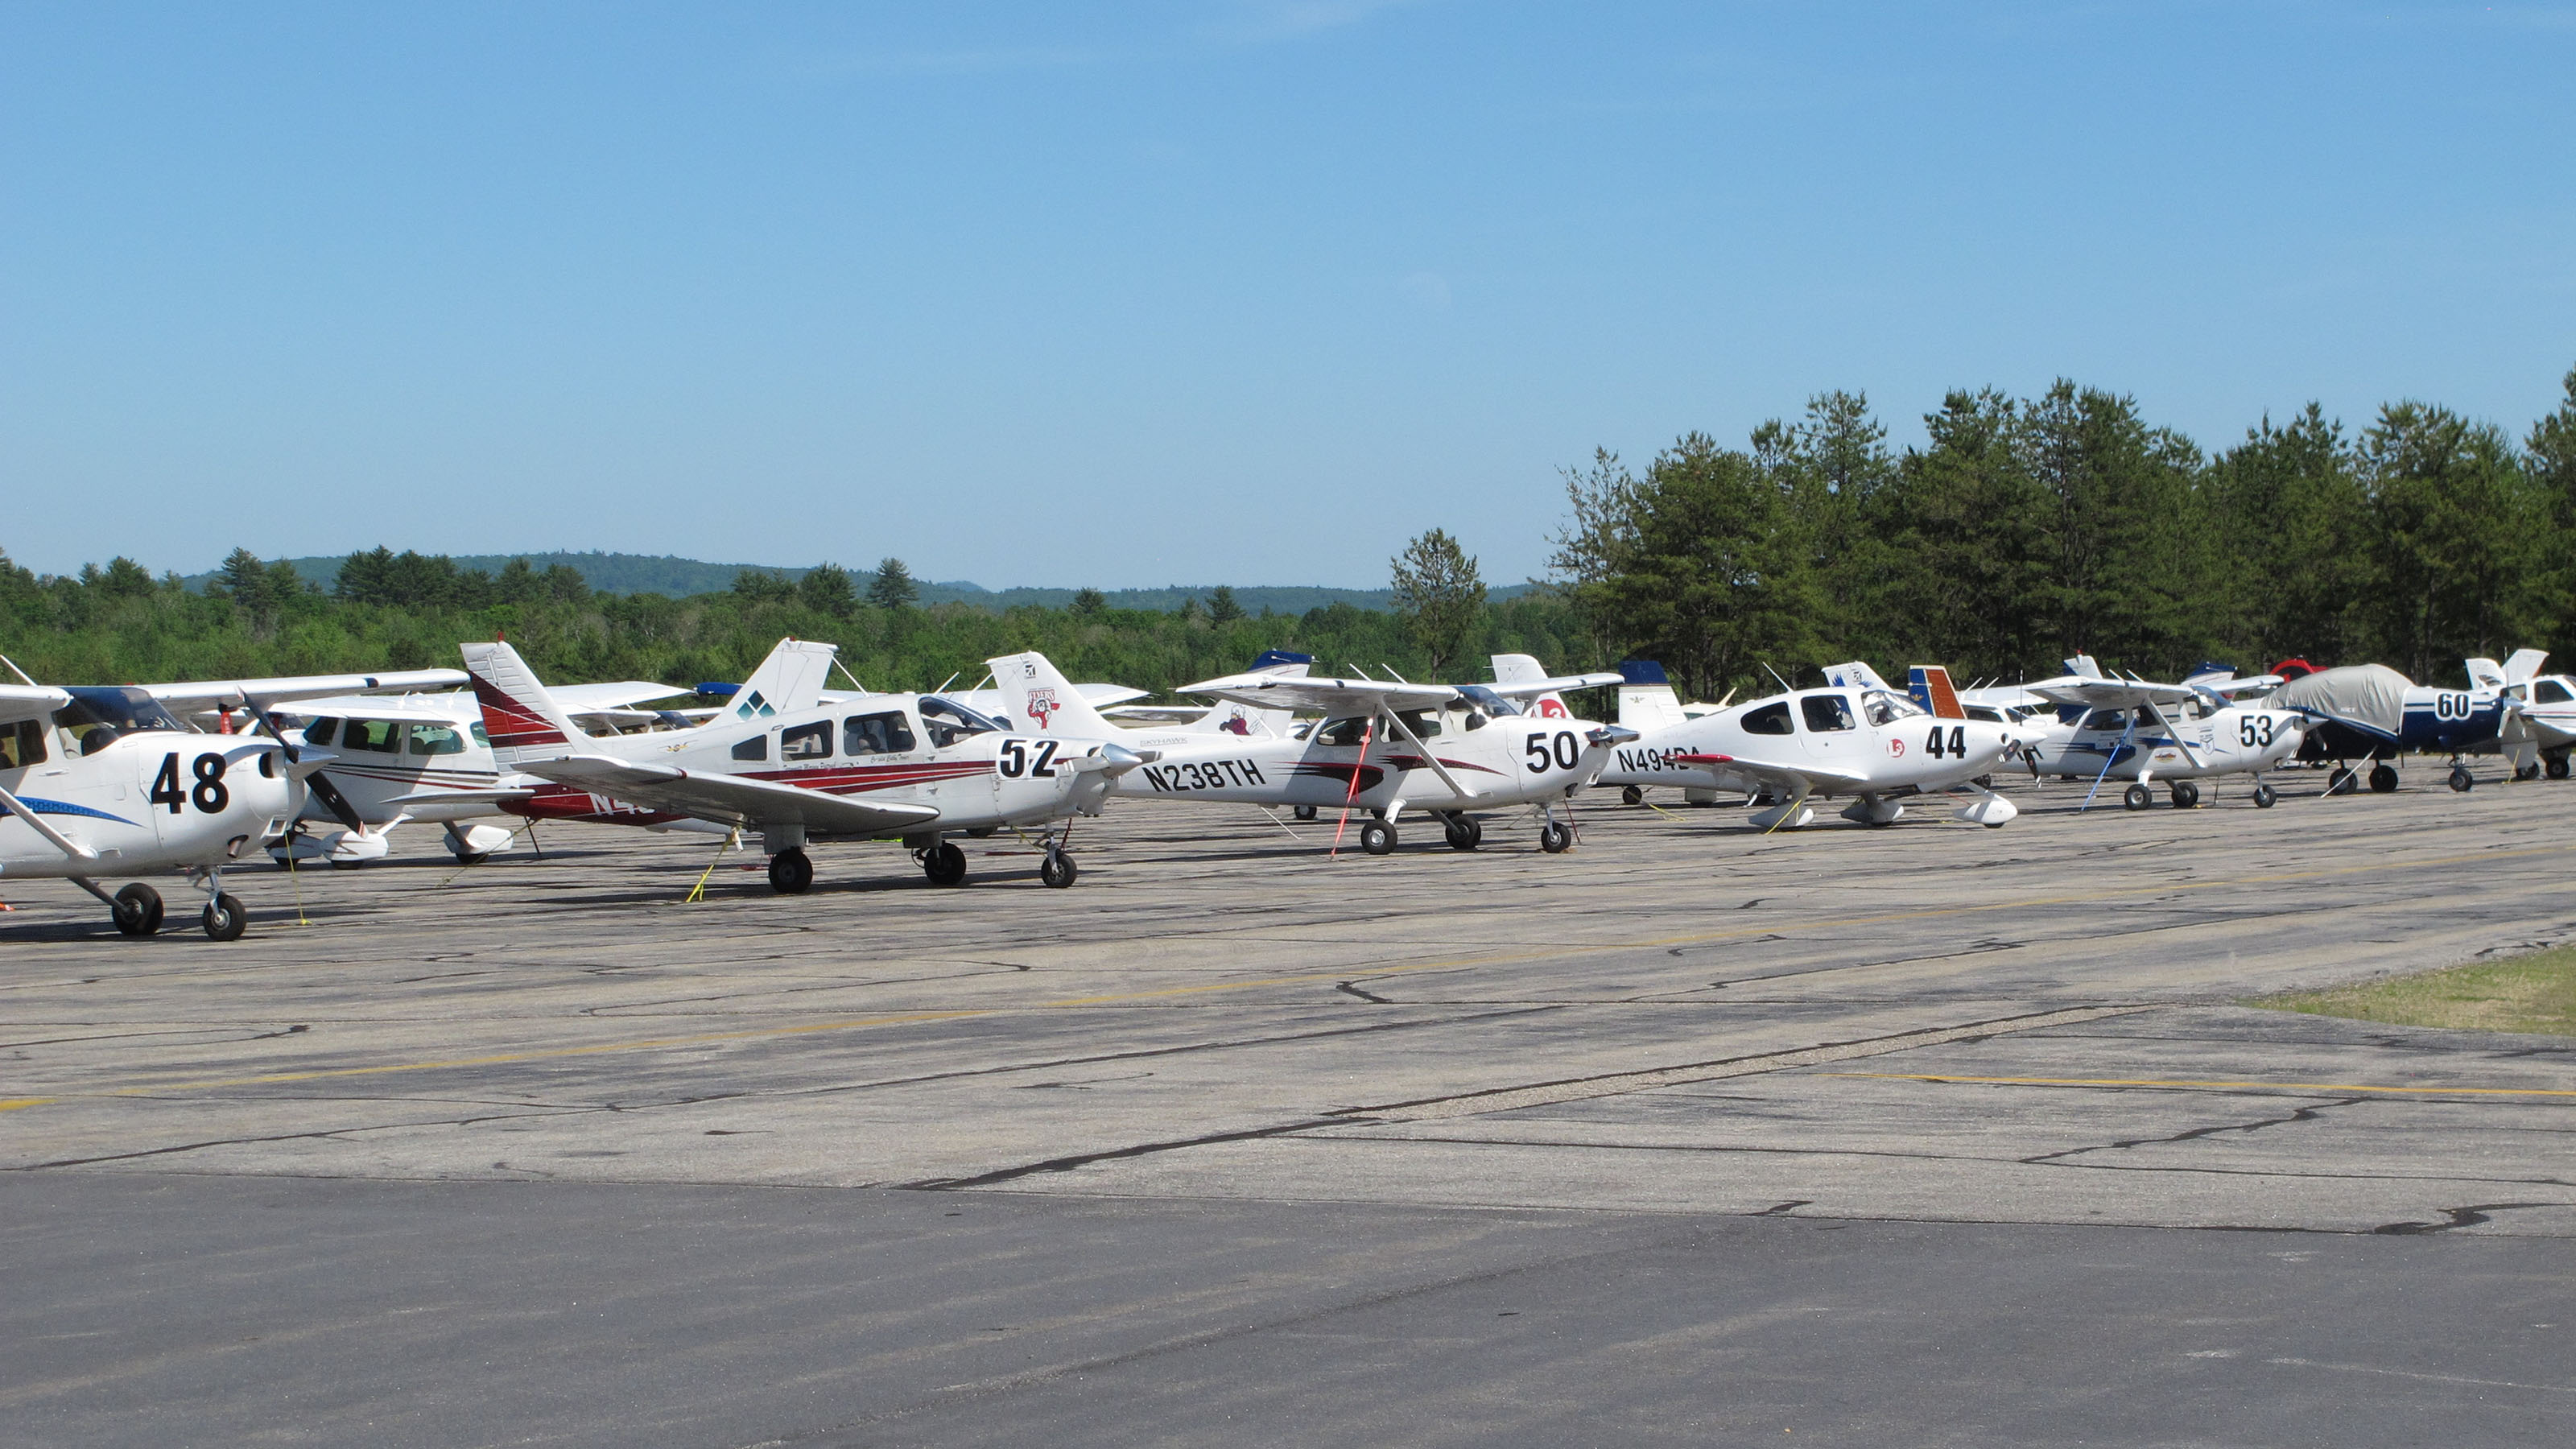 Members of the local aviation community who watched the ramp fill up with race airplanes were delighted that Eastern Slope Regional Airport played a major role in the 2018 Air Race Classic. Photo by Dan Namowitz.